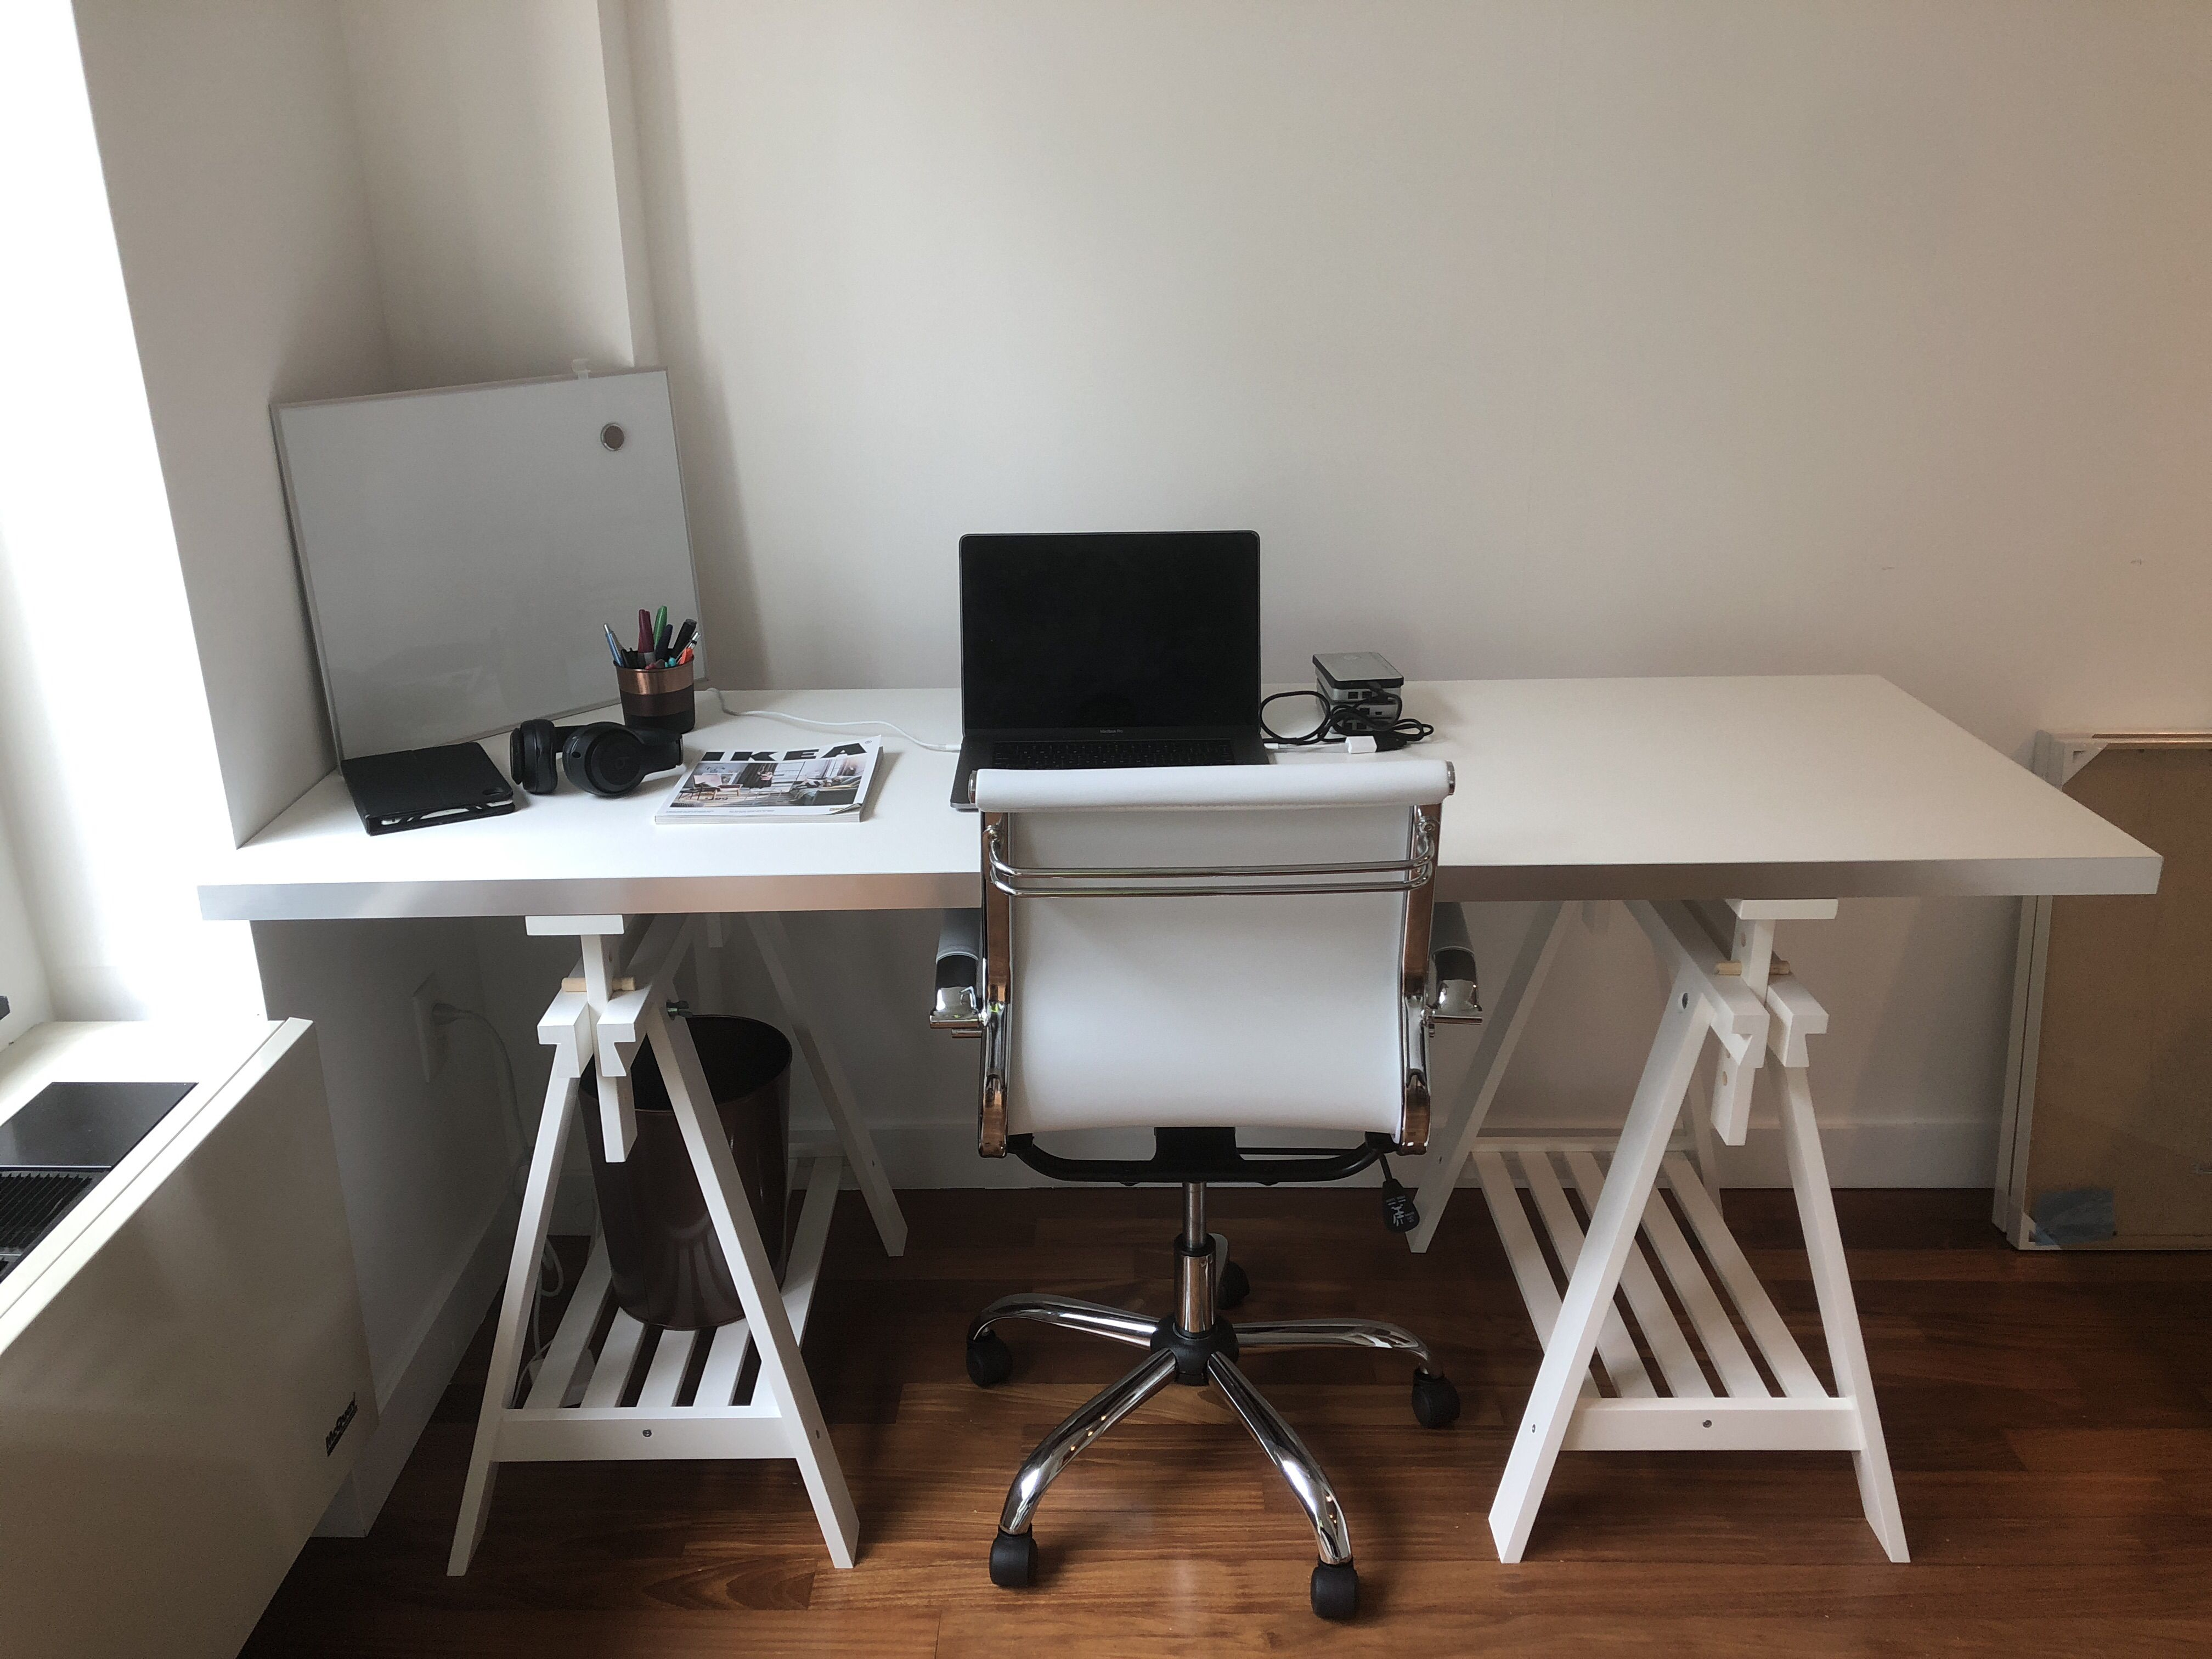 Ikea Desk Hack With White Finnvard Trestle Legs And A Hallestad